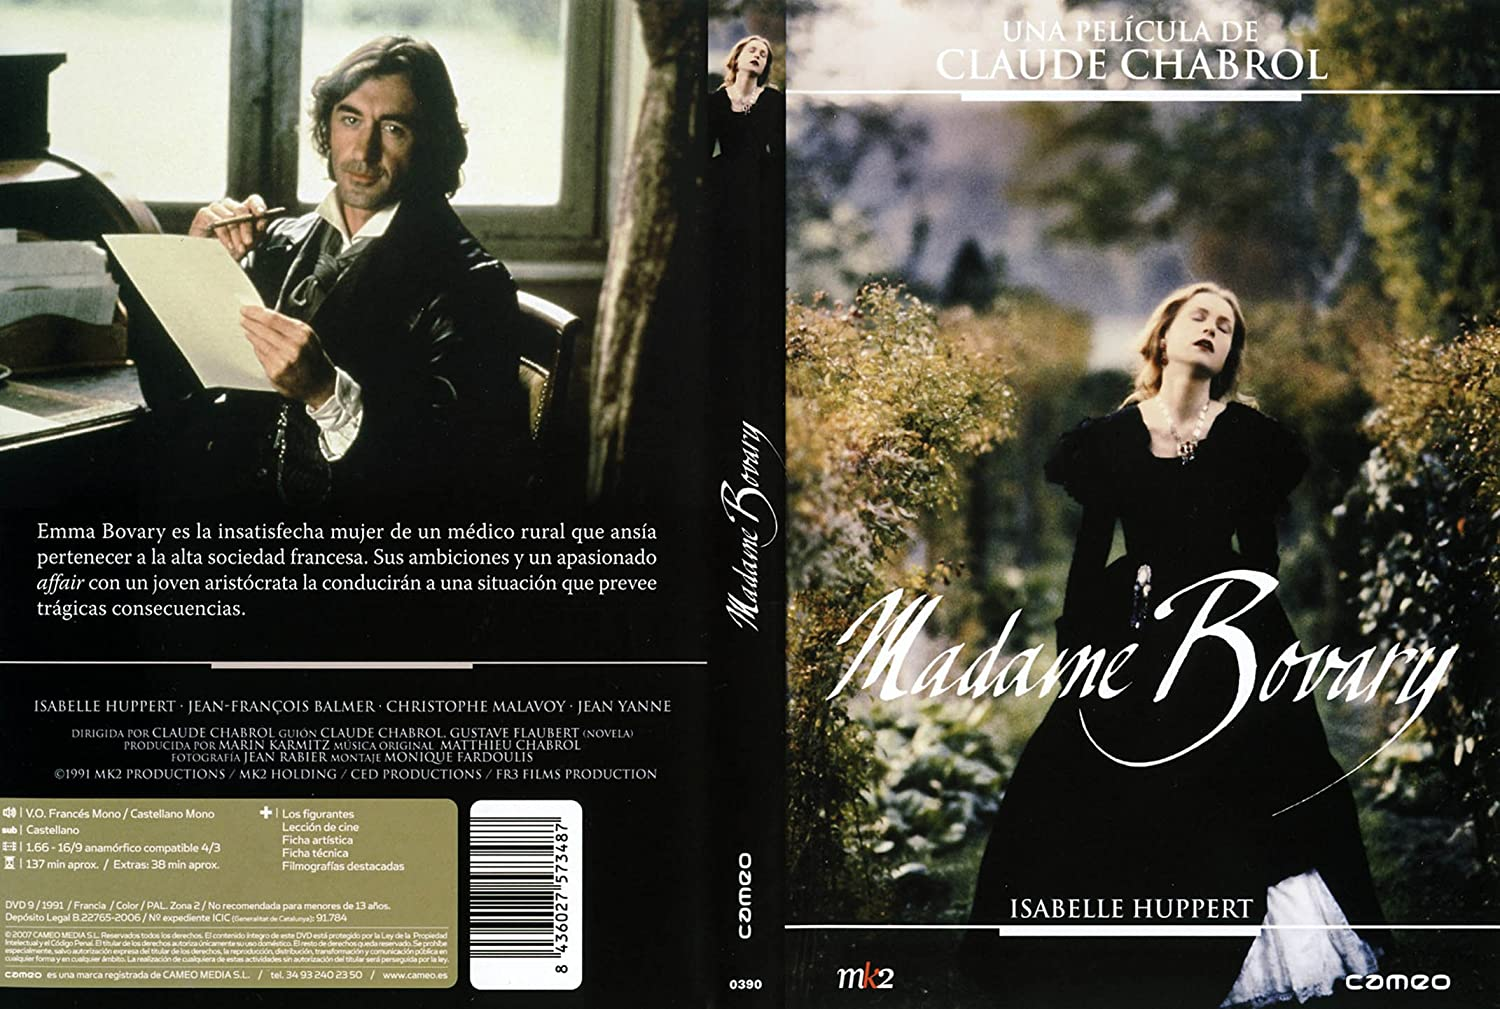 CHABROL BOVARY TÉLÉCHARGER MADAME